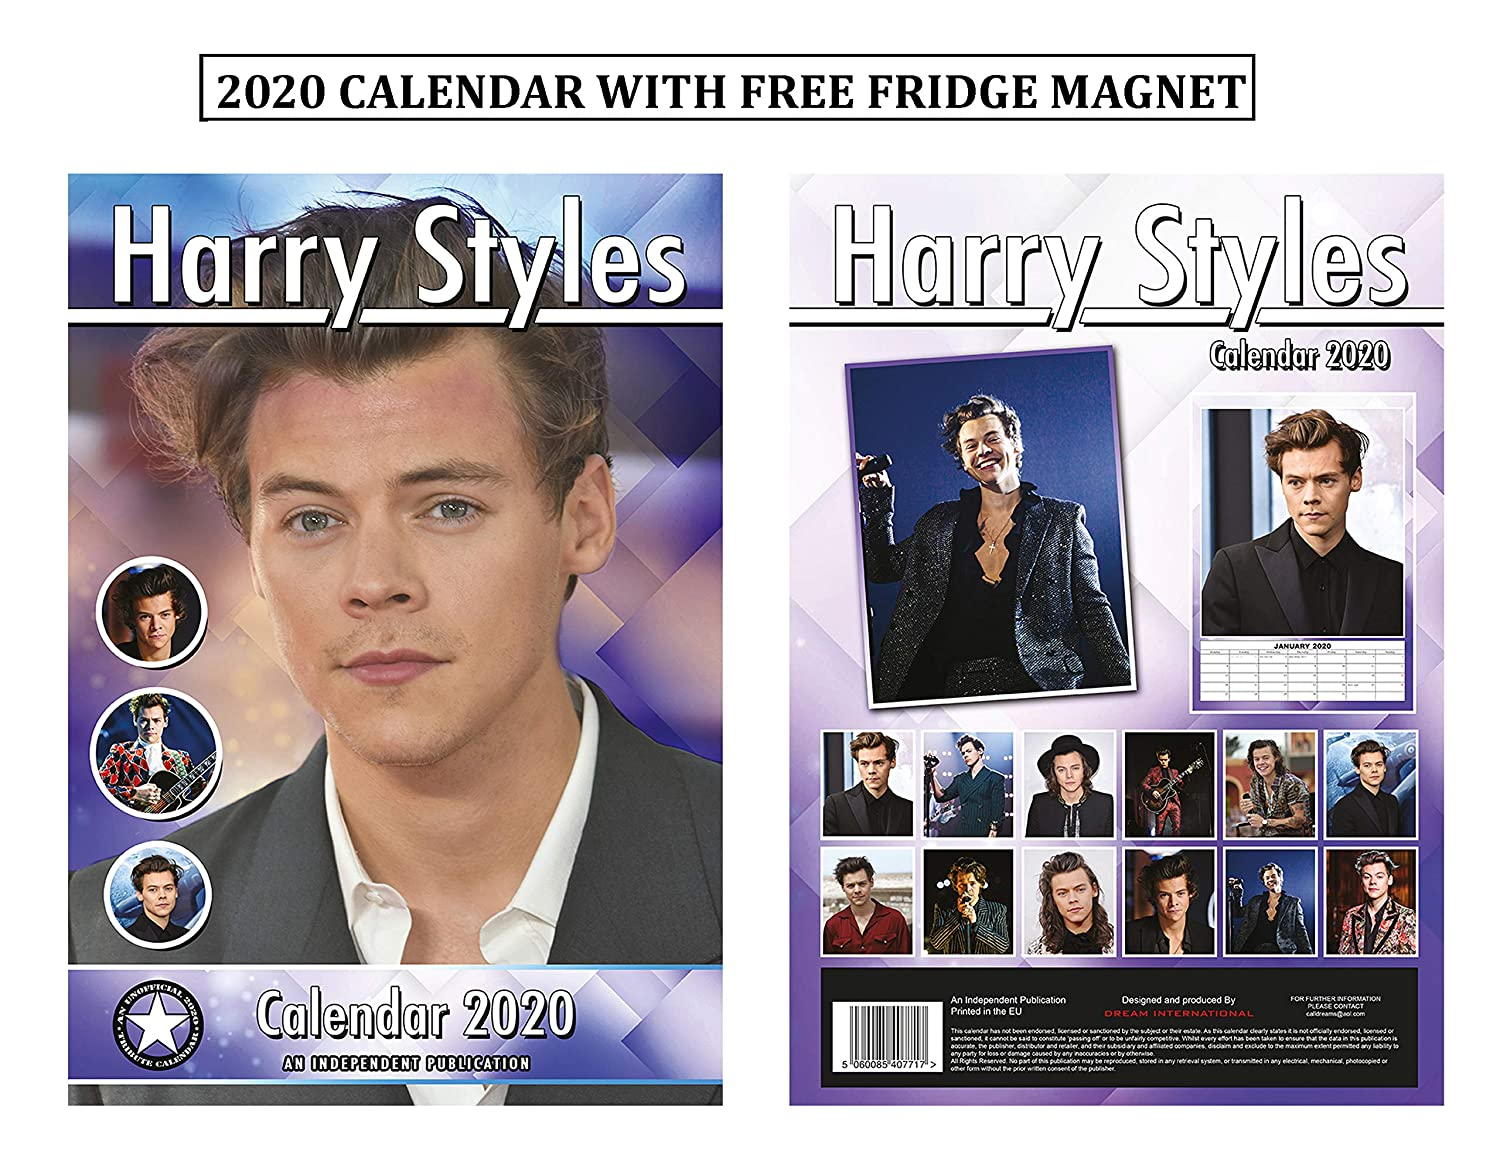 Harry Styles Calendario 2020 + Imán para nevera de Harry Styles ...